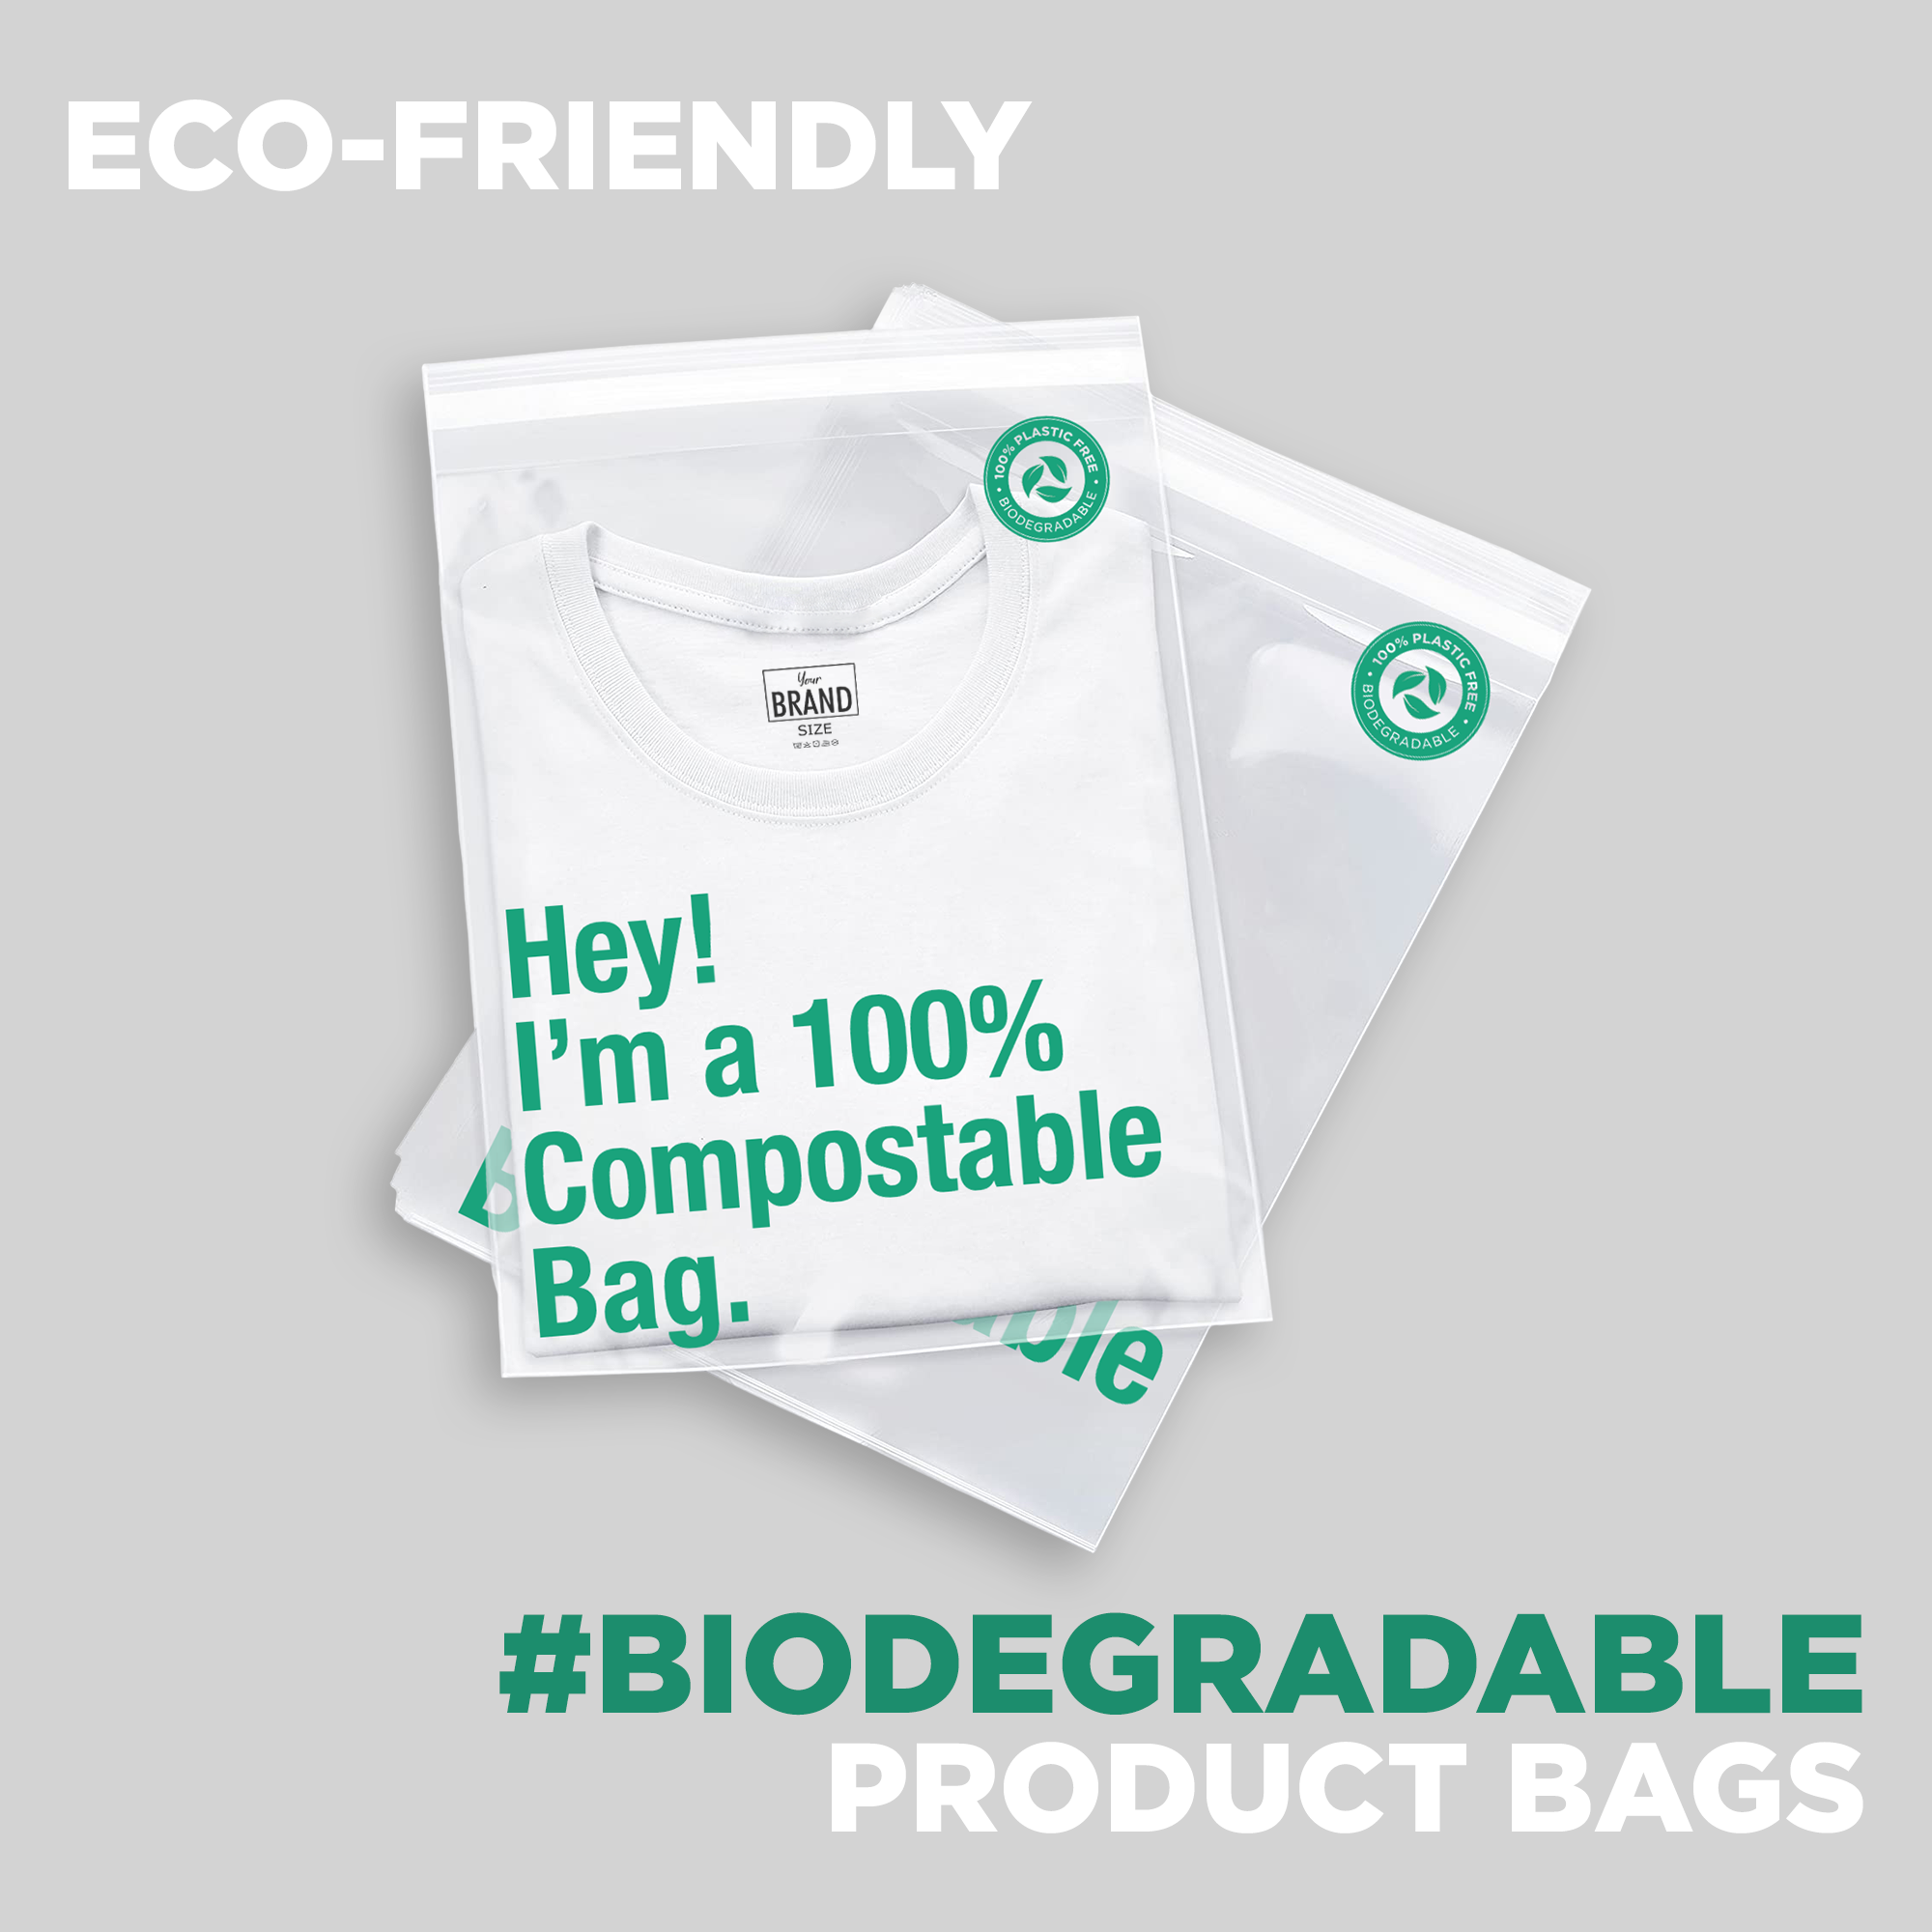 Eco-Friendly Product Bags